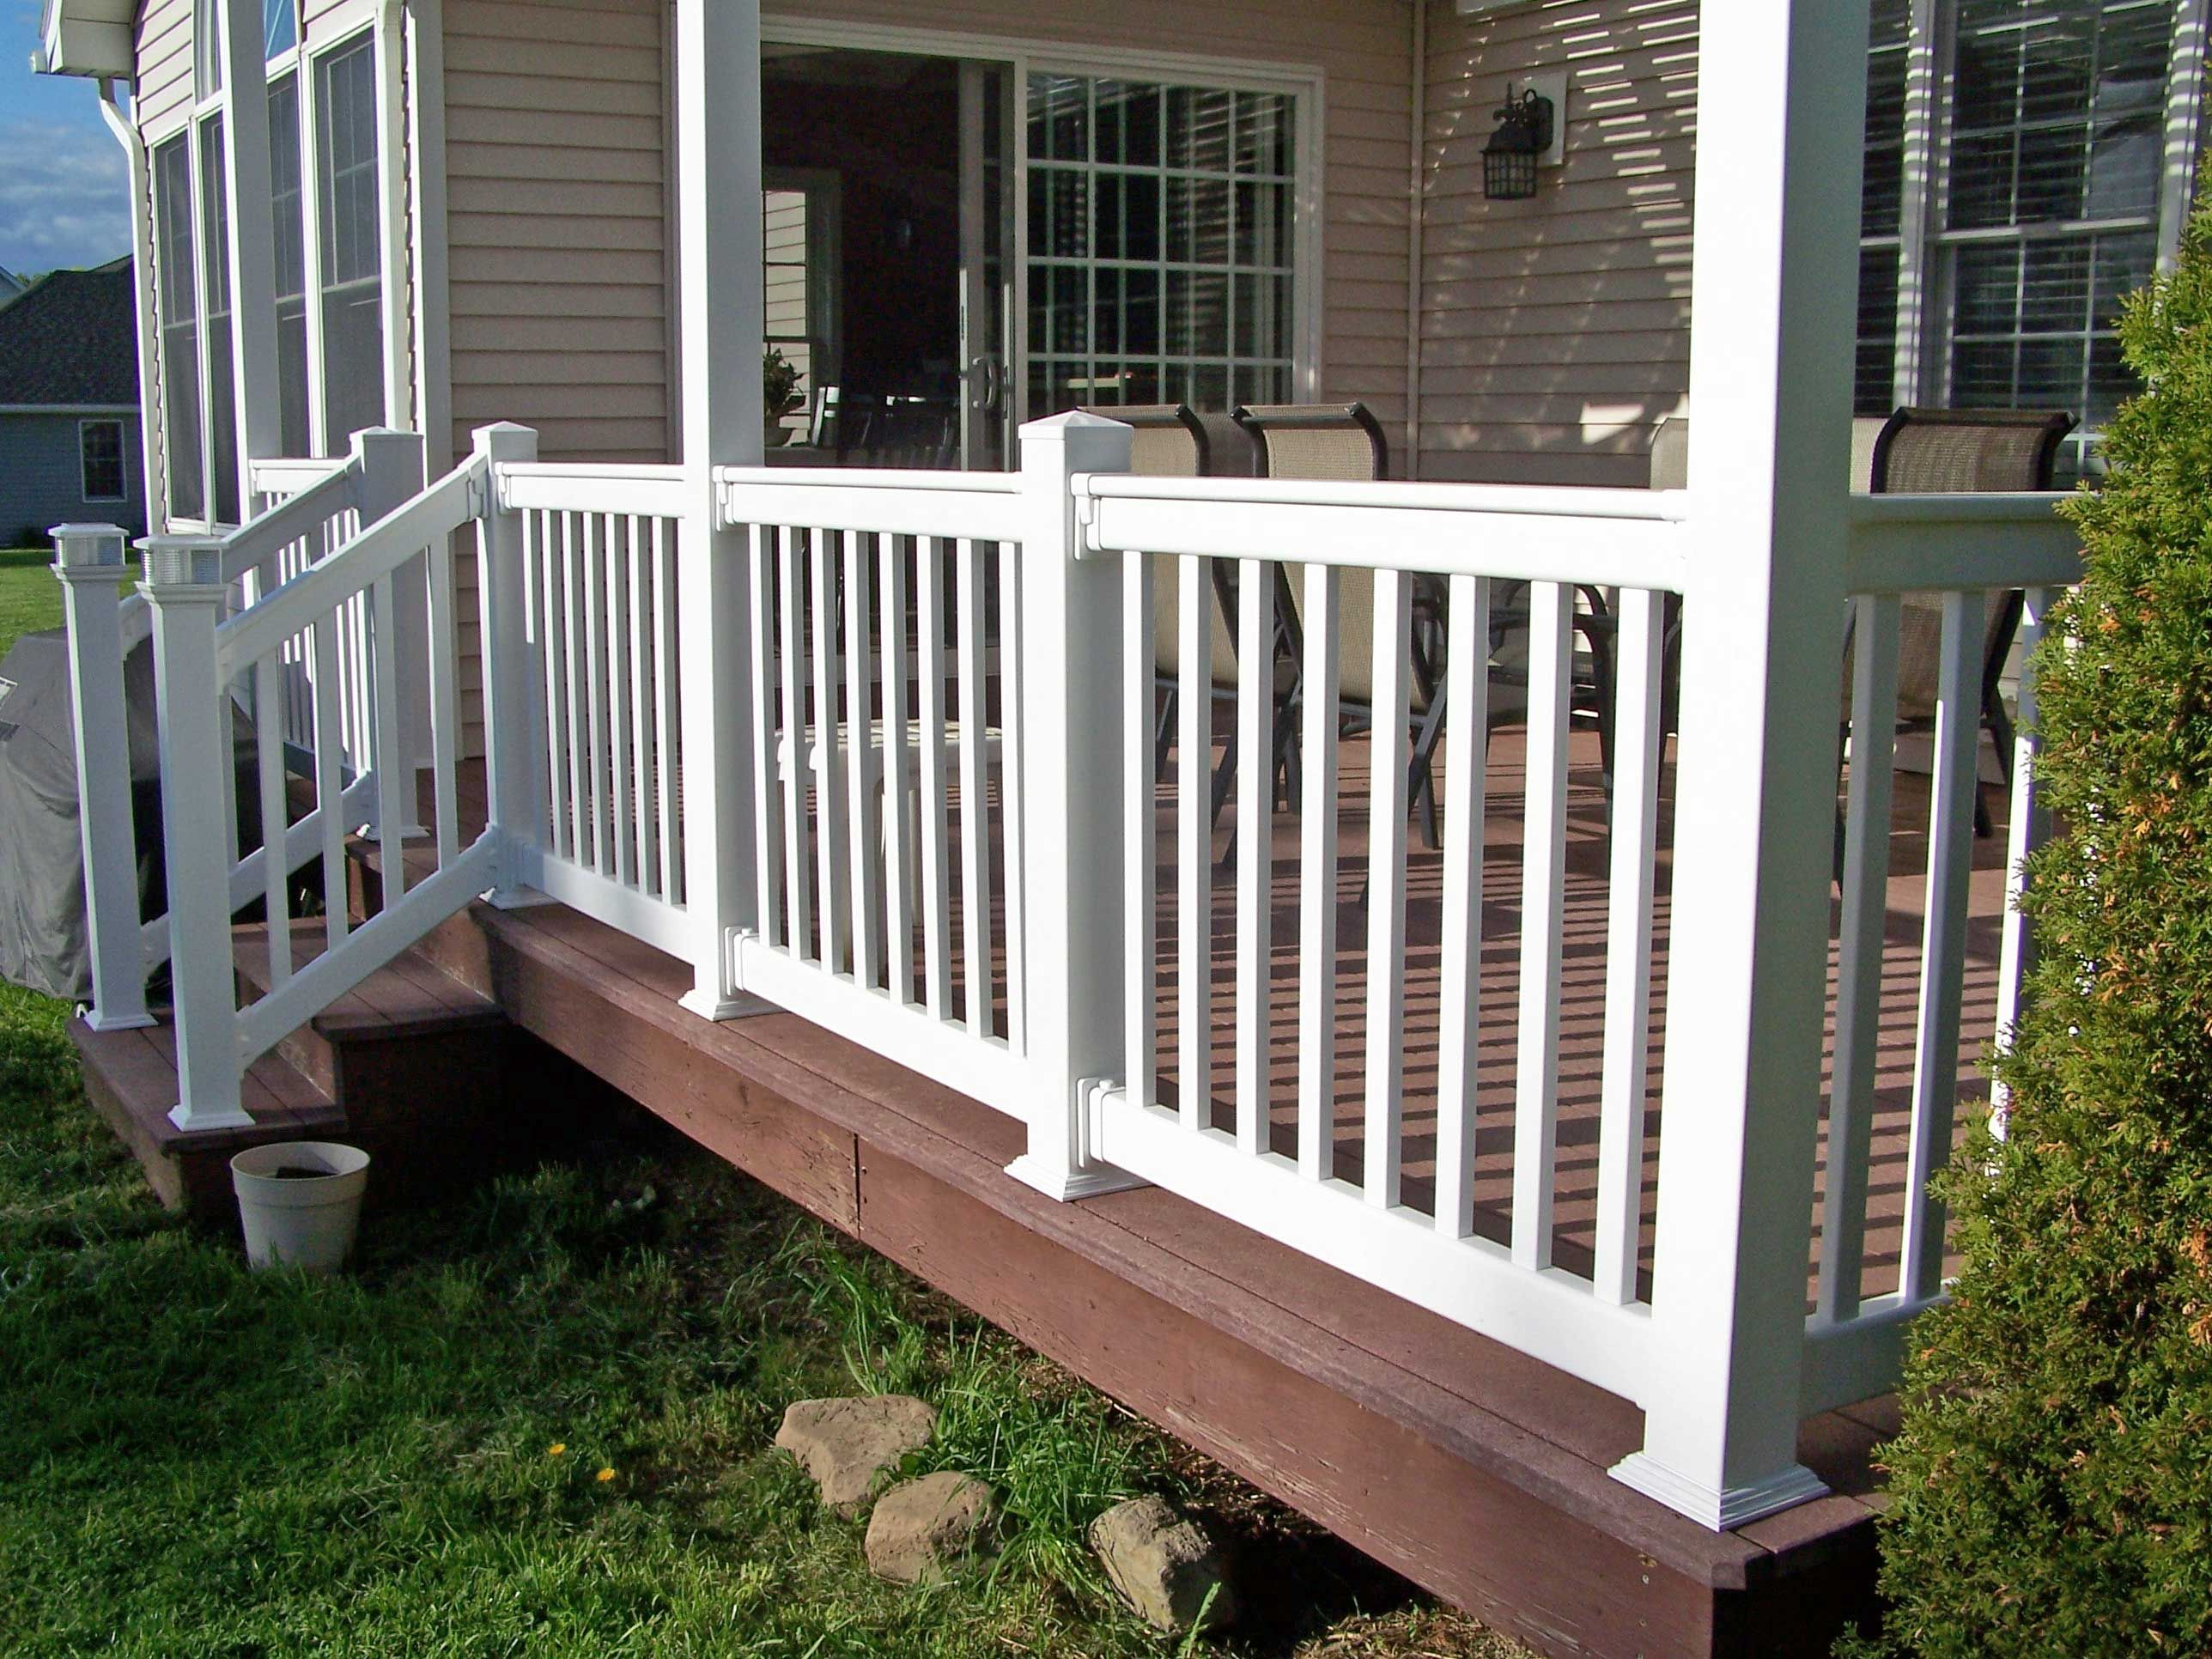 Railings At Wholesale Fence And Railings Llc Rochester Ny Railing Installs Porch Railing Designs Outdoor Porch Porch Railing